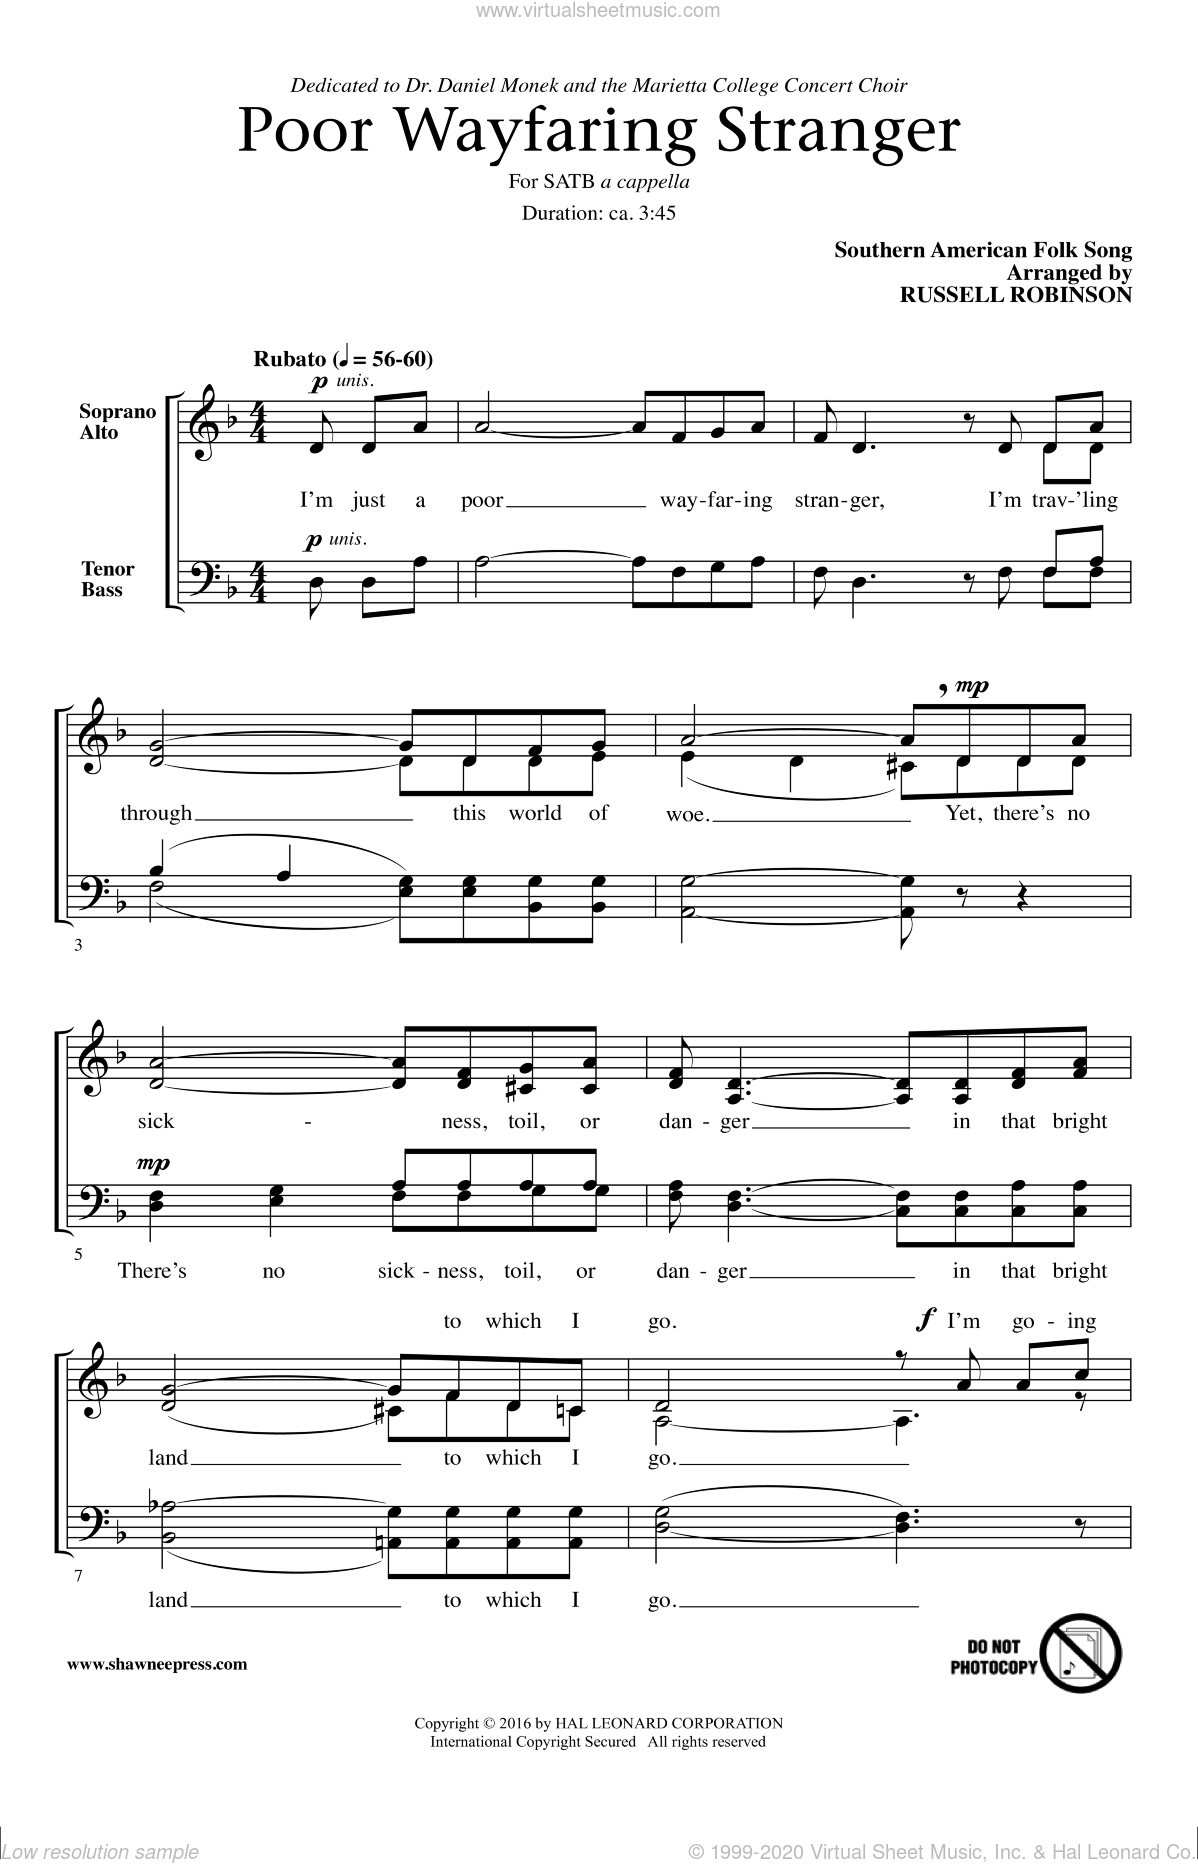 Poor Wayfaring Stranger sheet music for choir and piano (SATB) by Russell Robinson